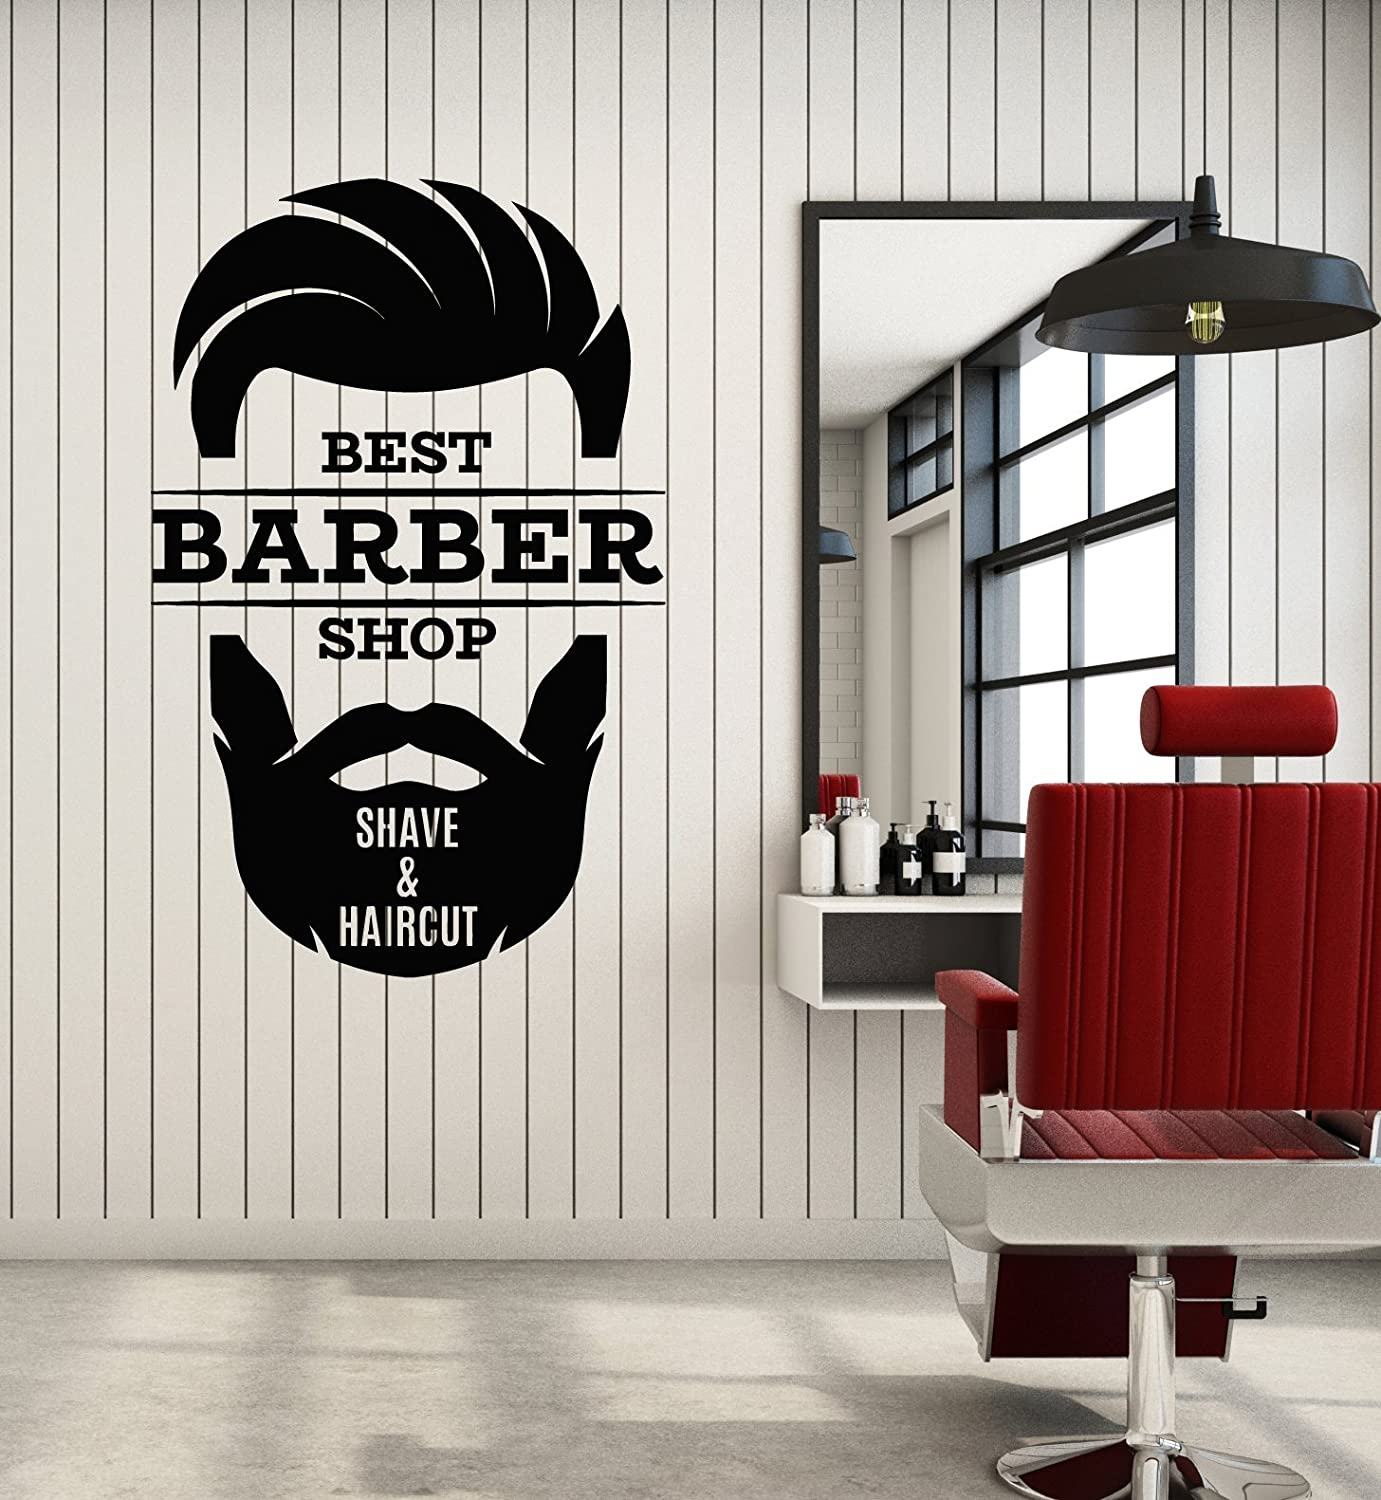 Vinyl Wall Decal Barber Shop Shave Haircut Hair Salon Logo Stickers Mural Large Decor Ig5279 Kitchen Dining